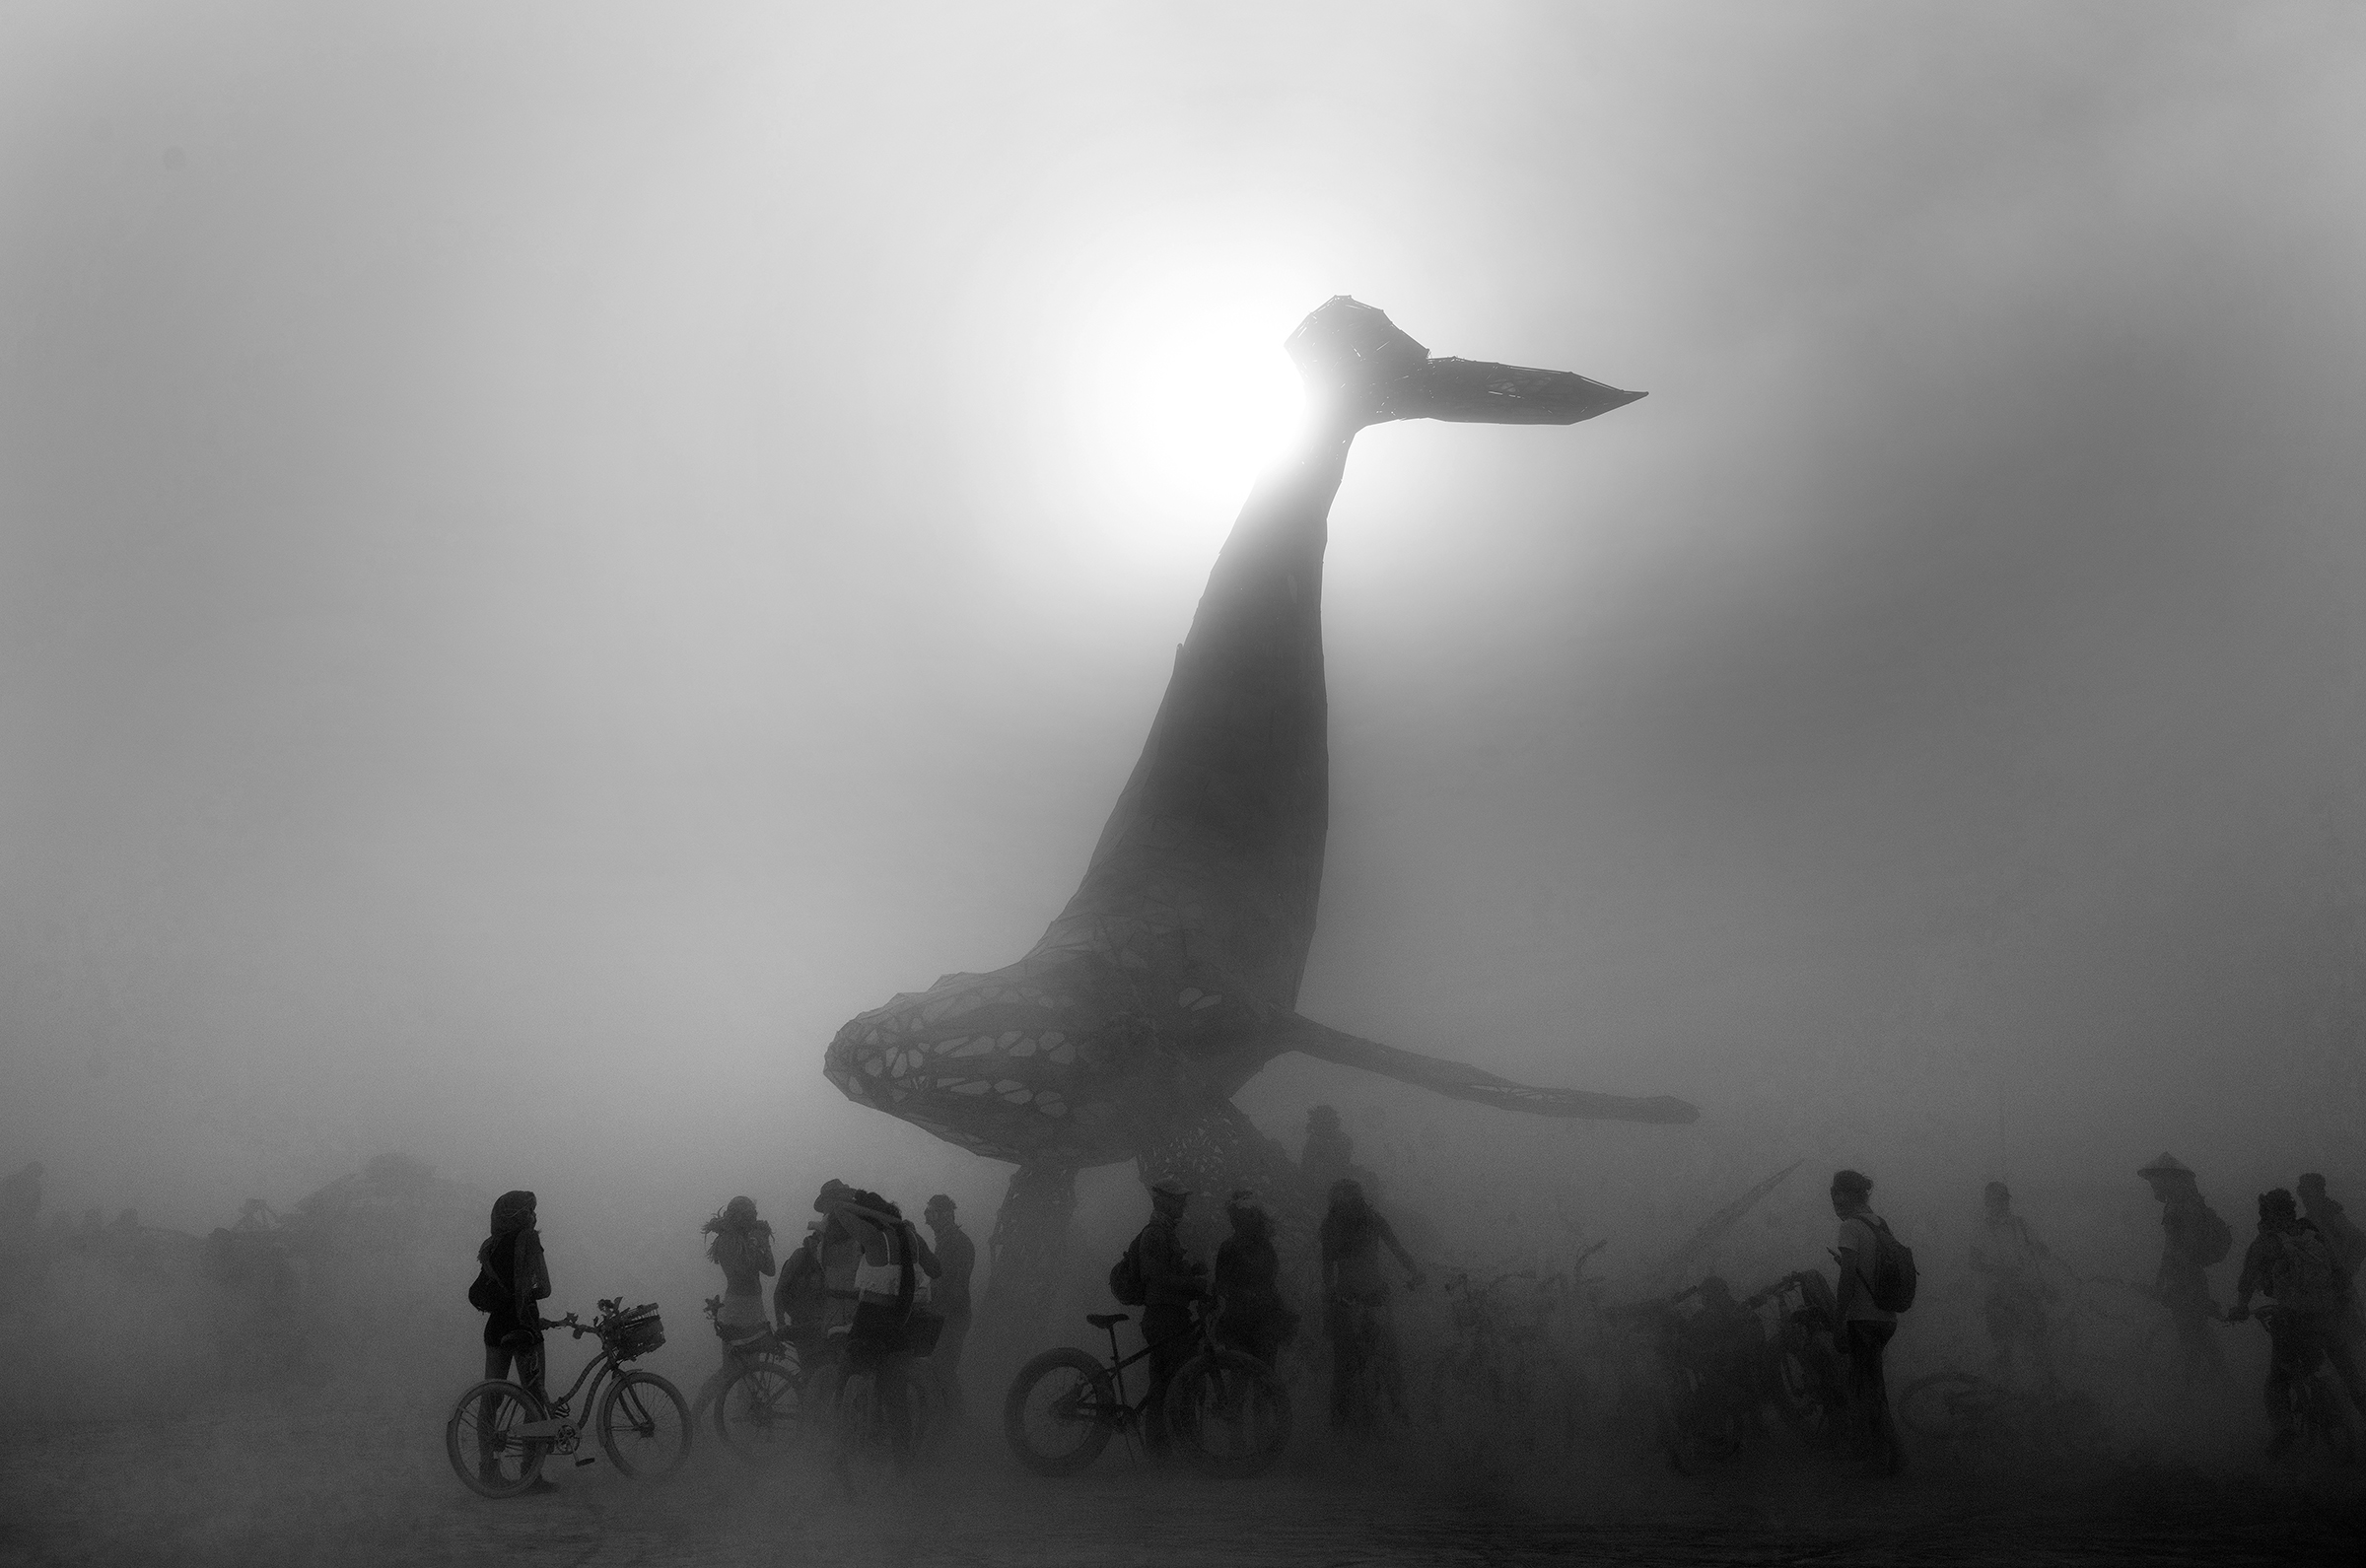 The Space Whale - Burning Man 2016